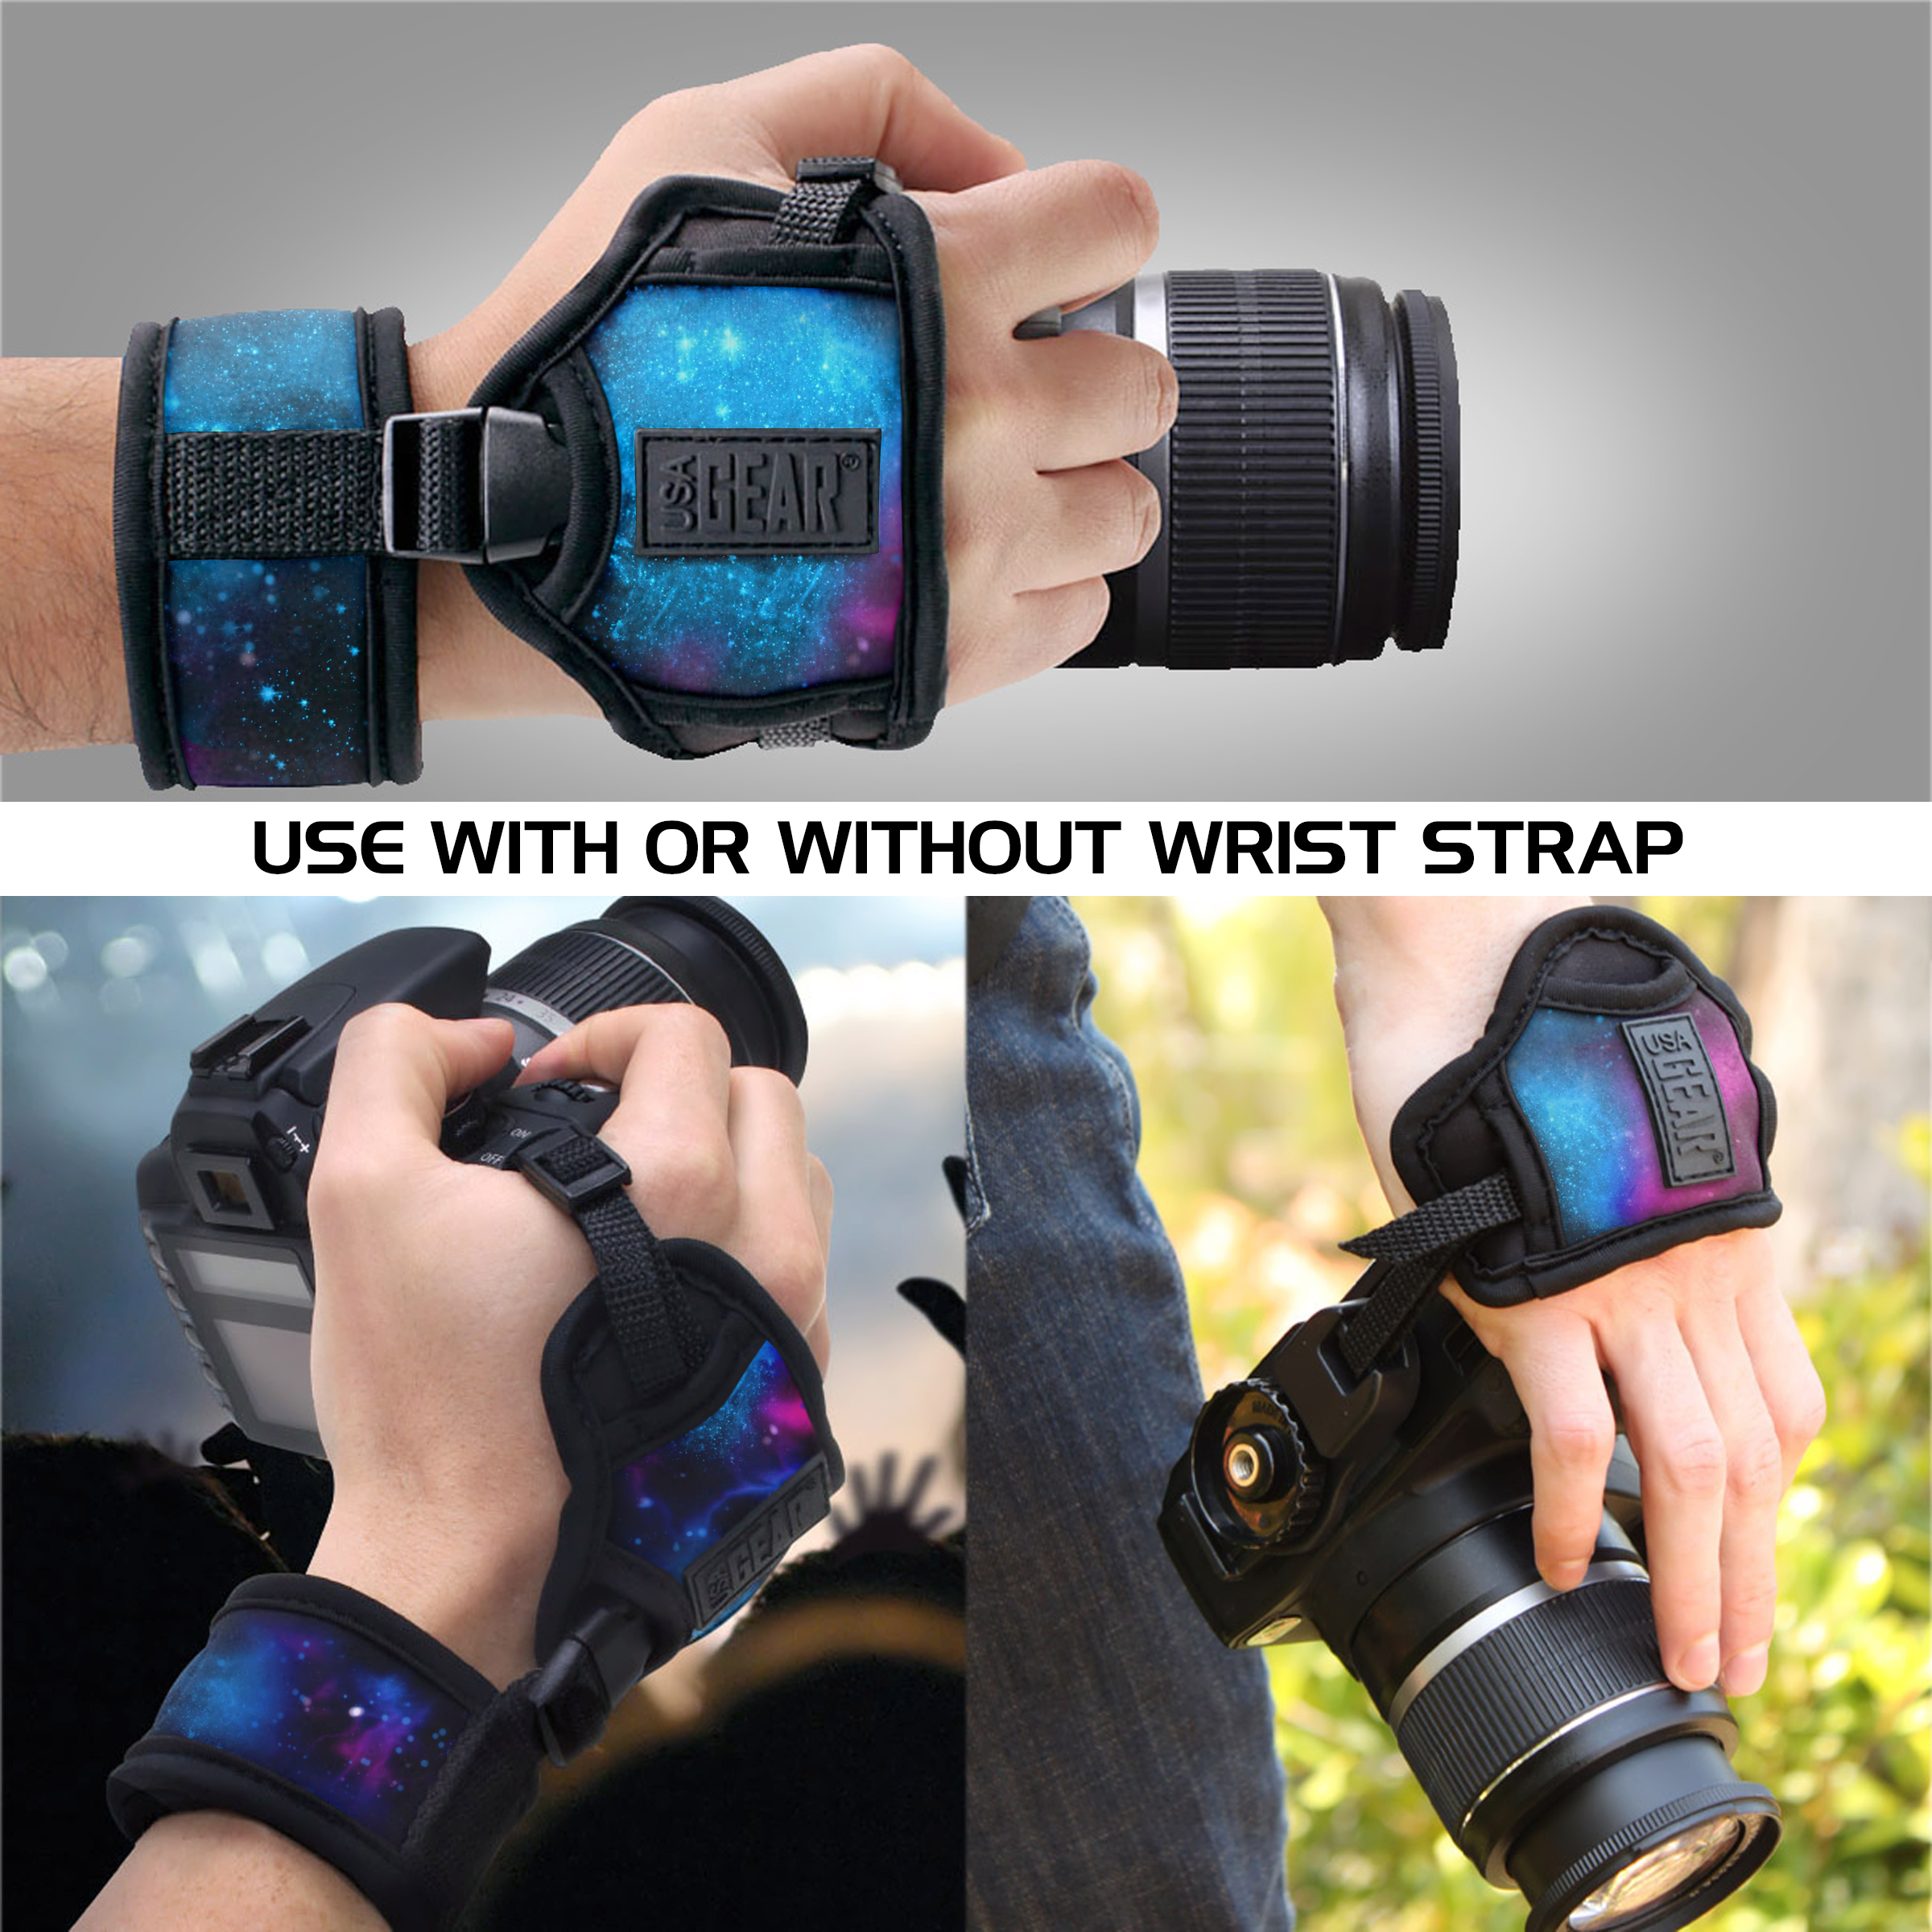 Nikon Compatible with Canon Sony and more DSLR Fujifilm Point /& Shoot Cameras USA GEAR Professional Camera Grip Hand Strap with Galaxy Neoprene Design and Metal Plate Mirrorless